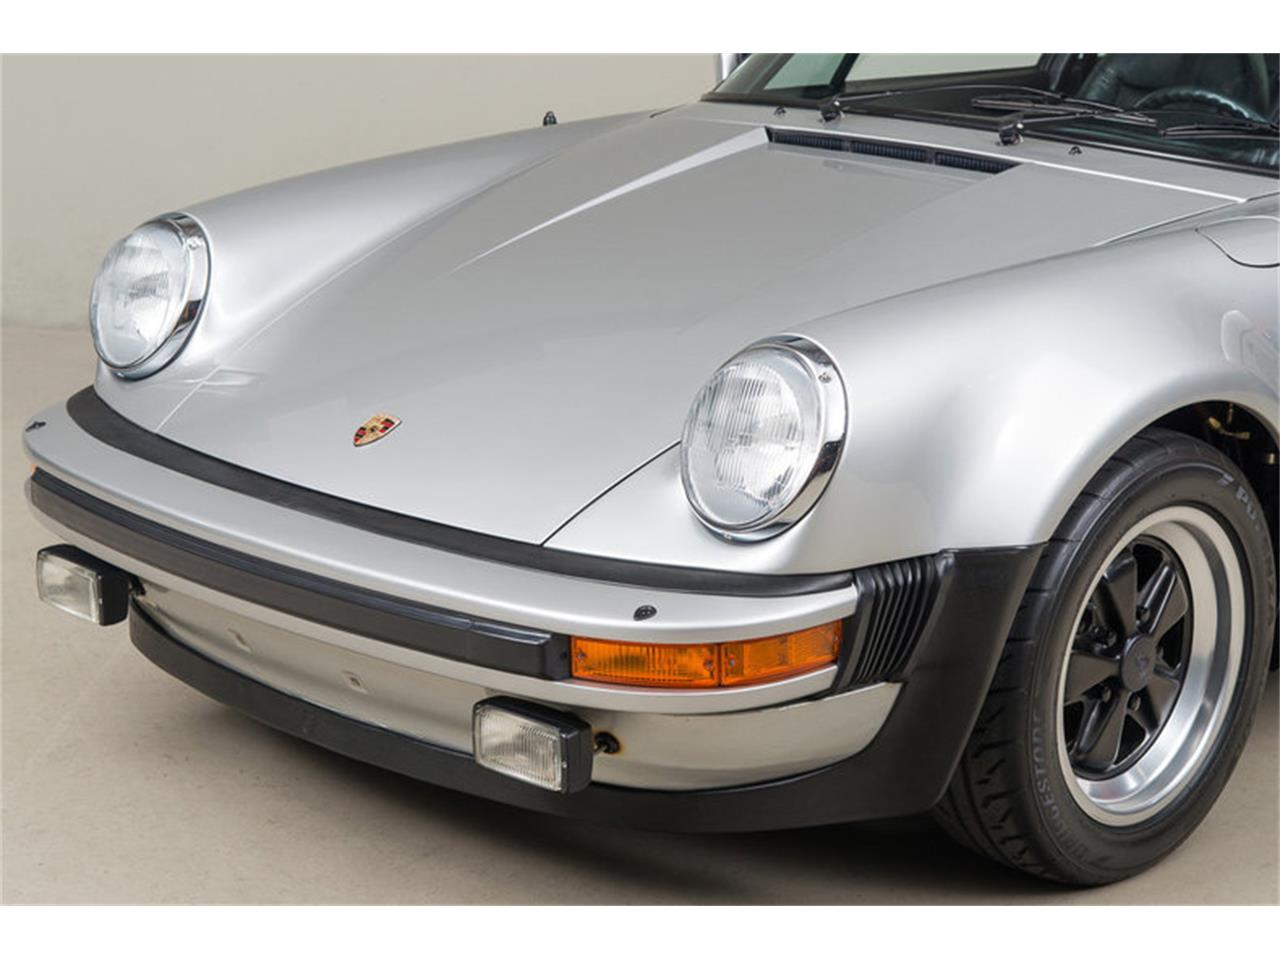 Large Picture of 1979 930 Turbo located in Scotts Valley California Auction Vehicle Offered by Canepa - LAM3